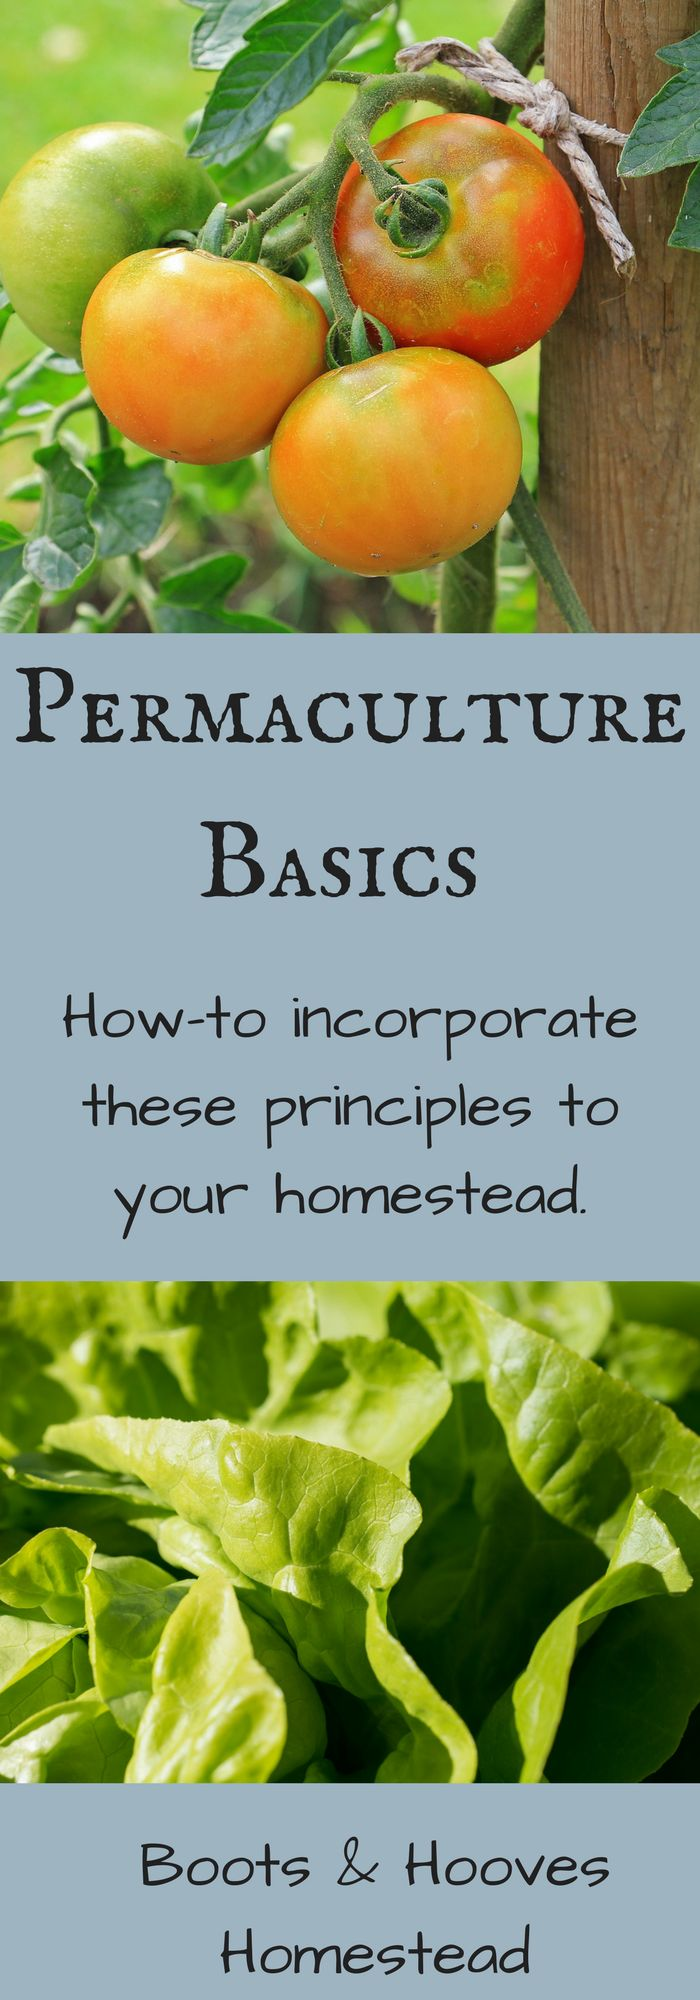 Giving Permaculture a Try - Boots & Hooves Homestead